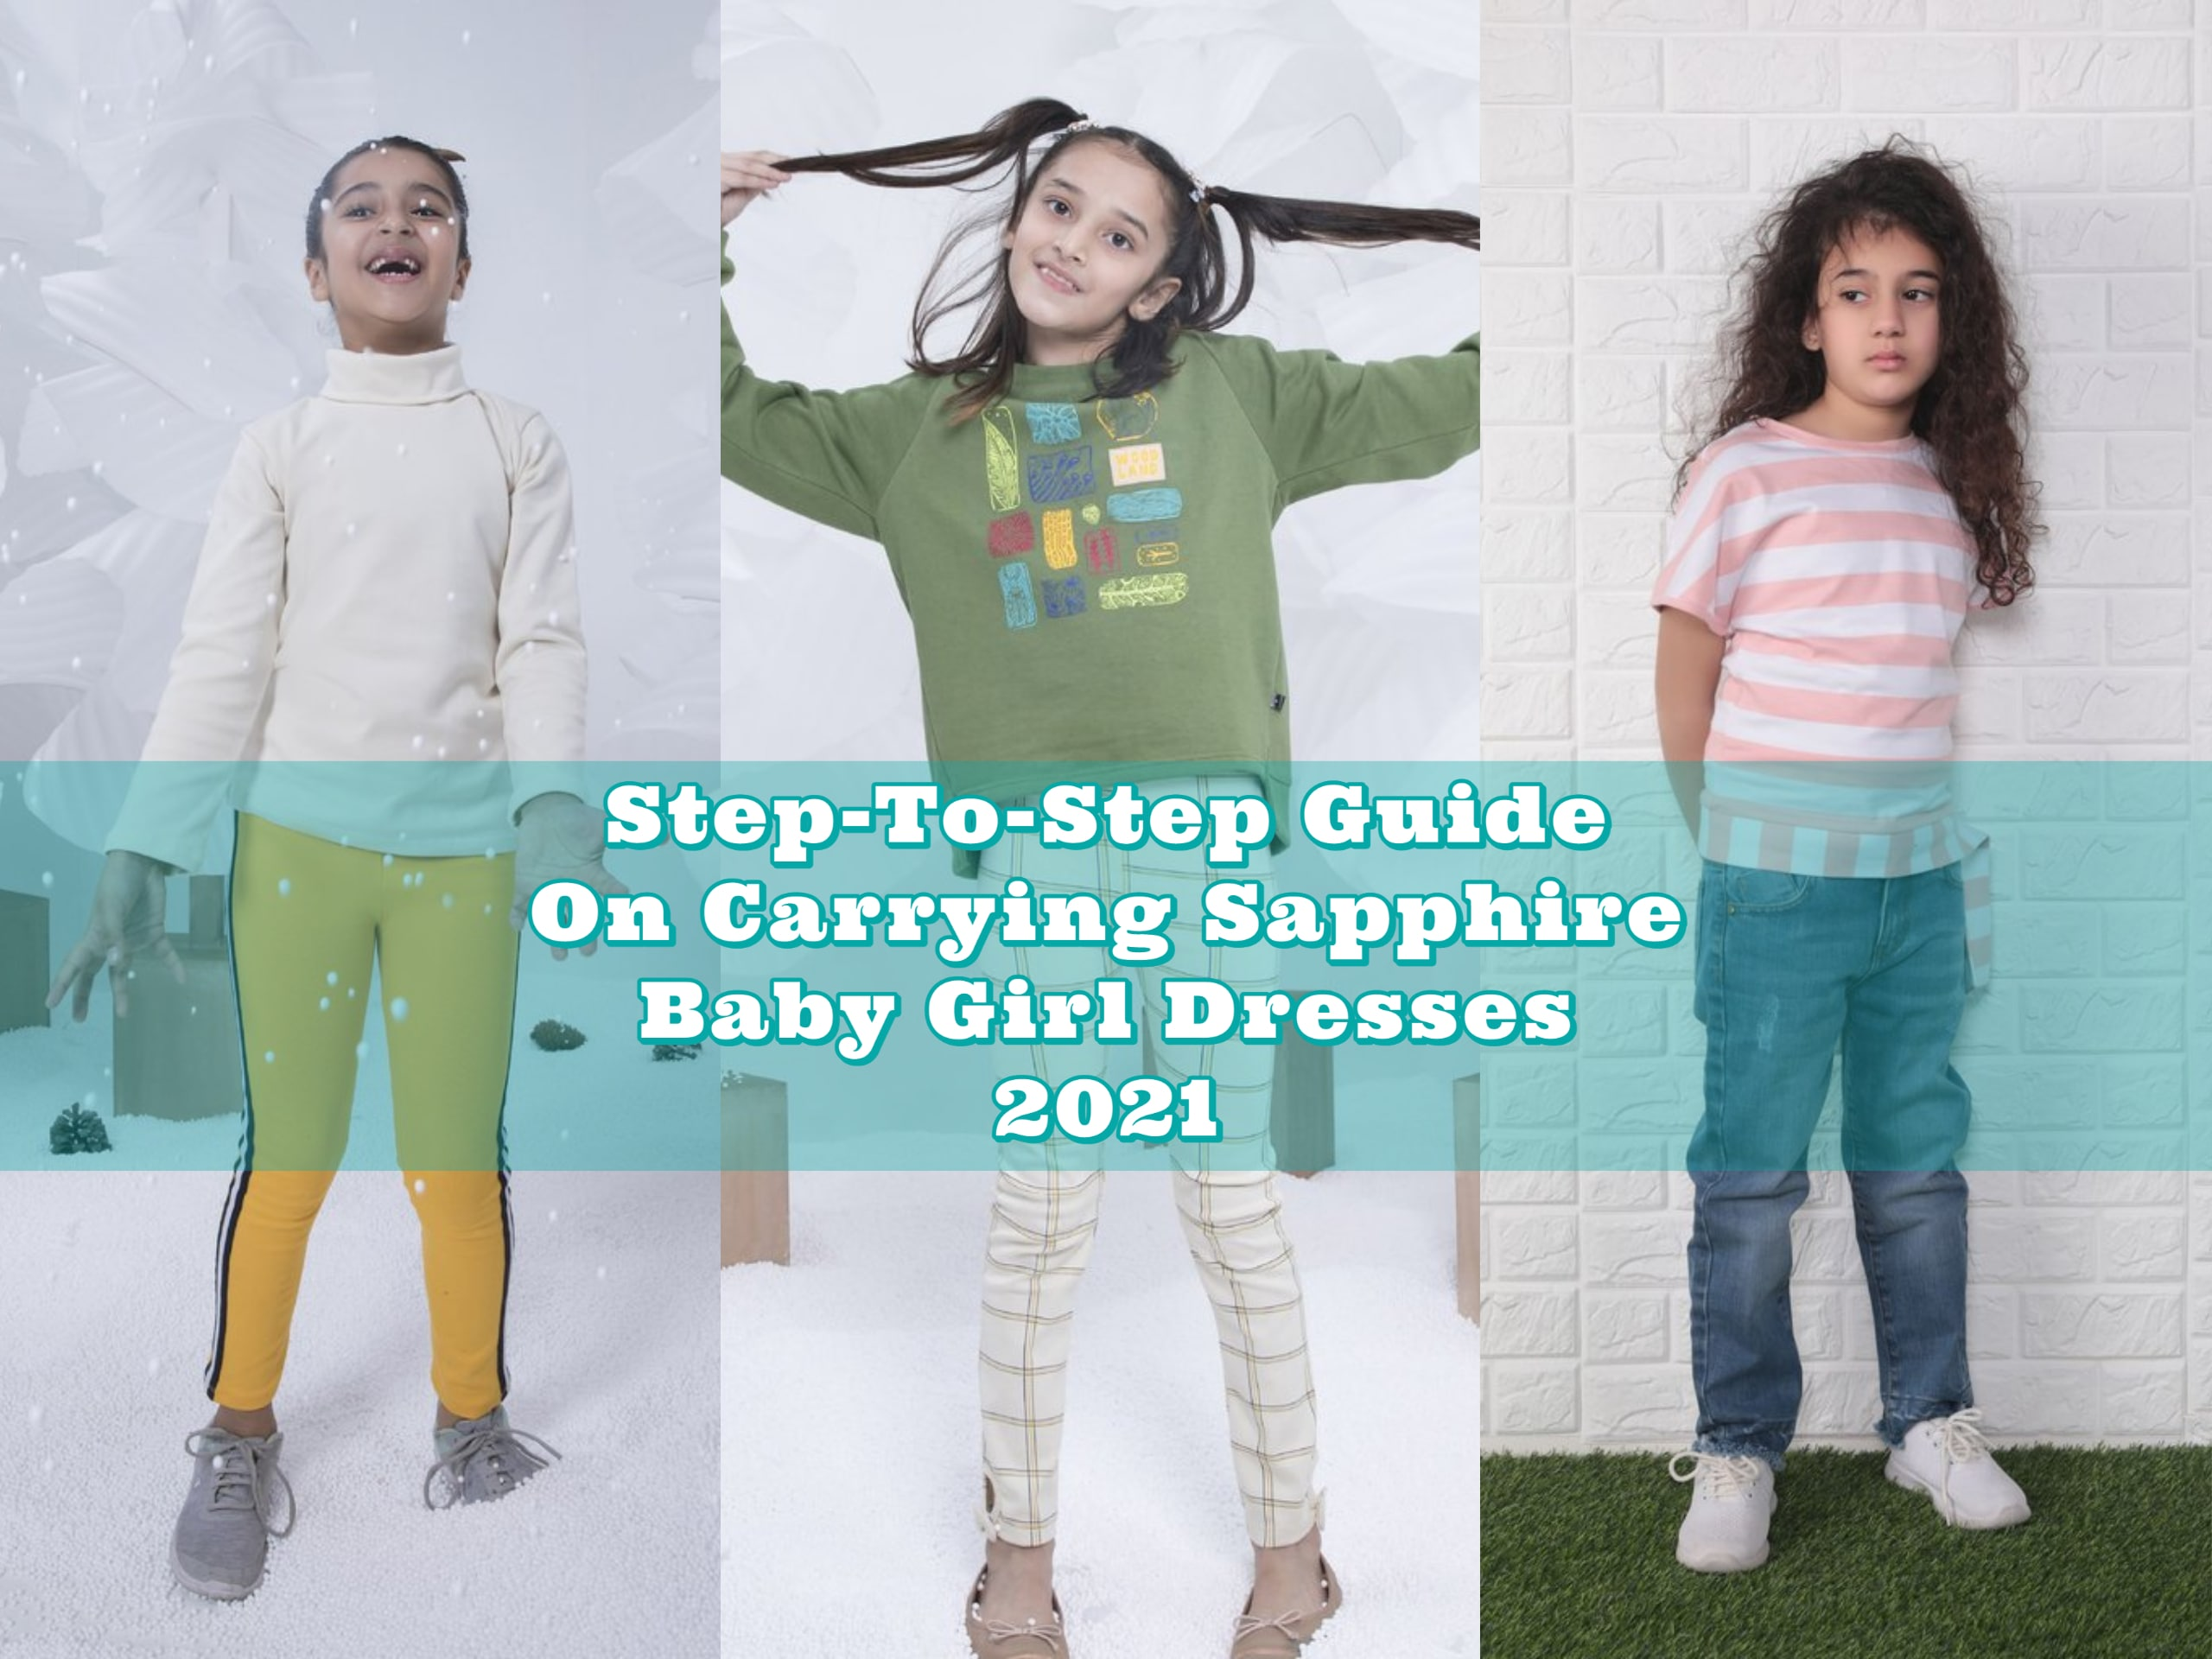 Step-To-Step Guide On Carrying Sapphire Baby Girl Dresses 2021